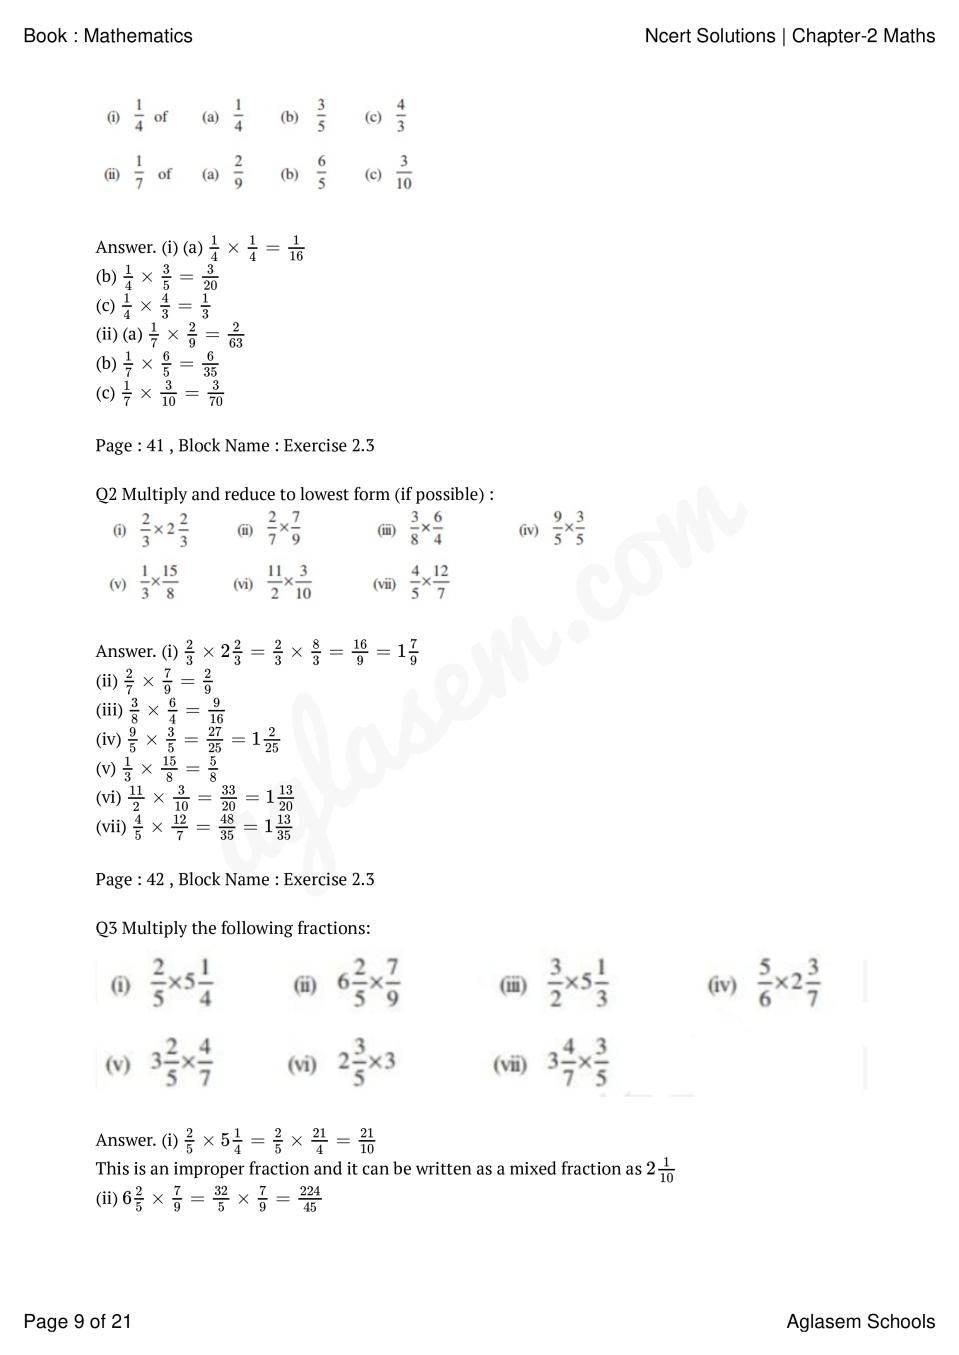 NCERT Solutions for Class 7 Maths Chapter 2 Fractions and